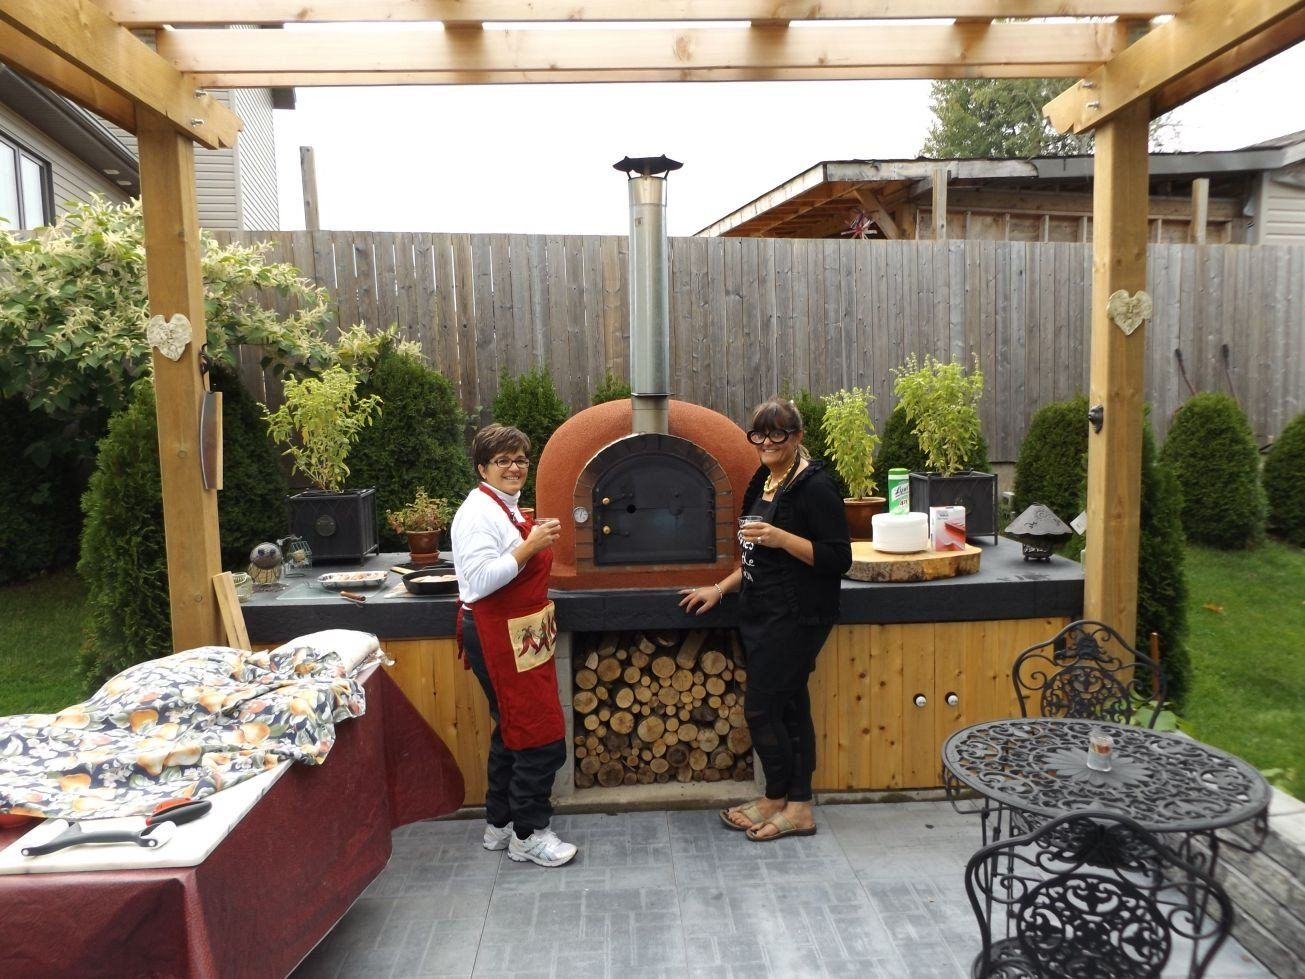 Outdoor Küchen Plan : Diy outdoor kitchen plan with pizza oven google search outdoor